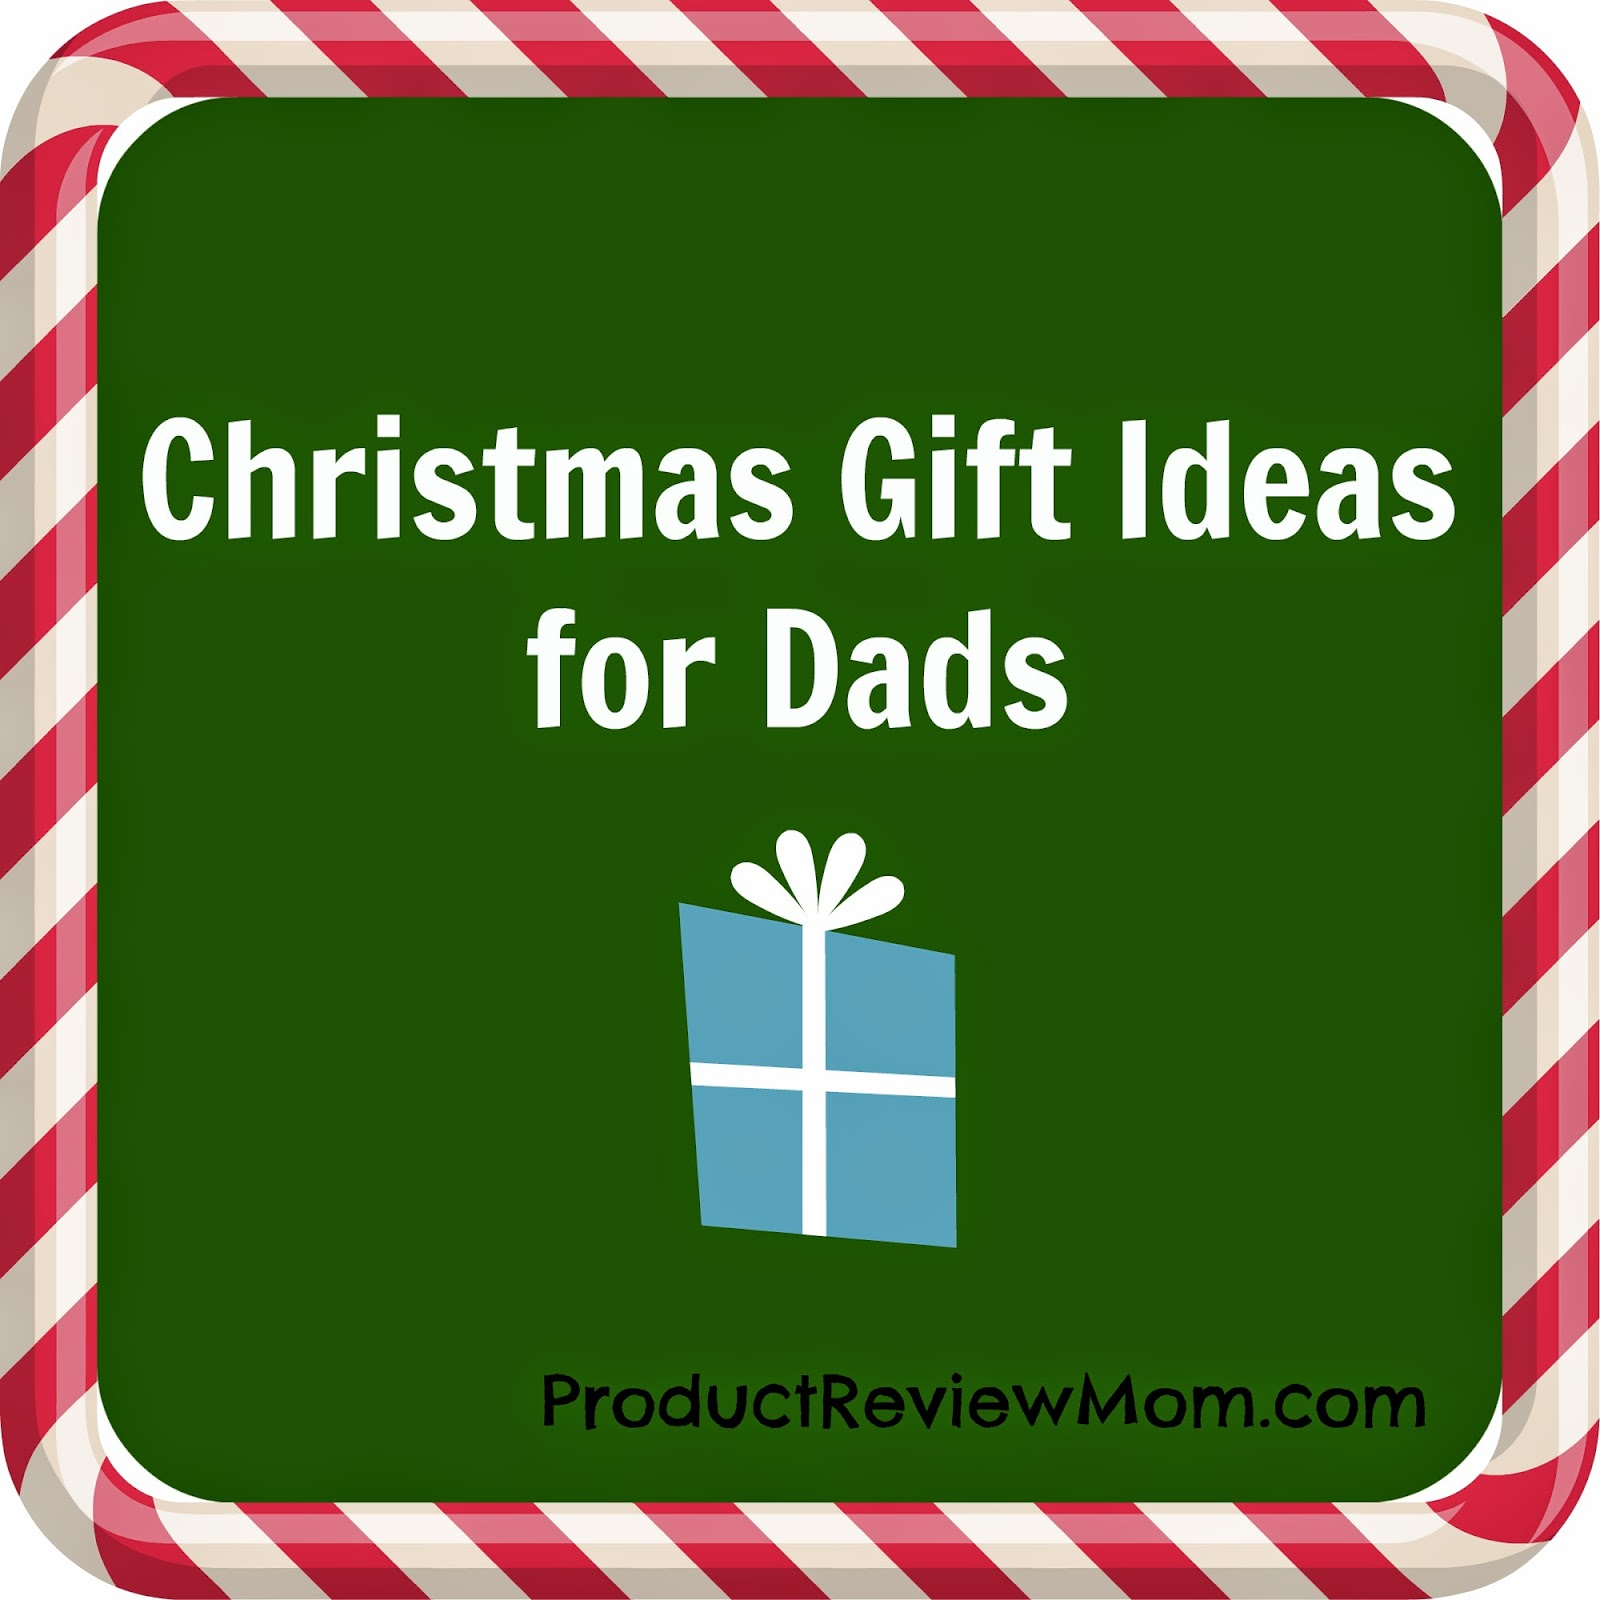 Christmas Gift Ideas for Dads #HolidayGiftGuide via www.productreviewmom.com